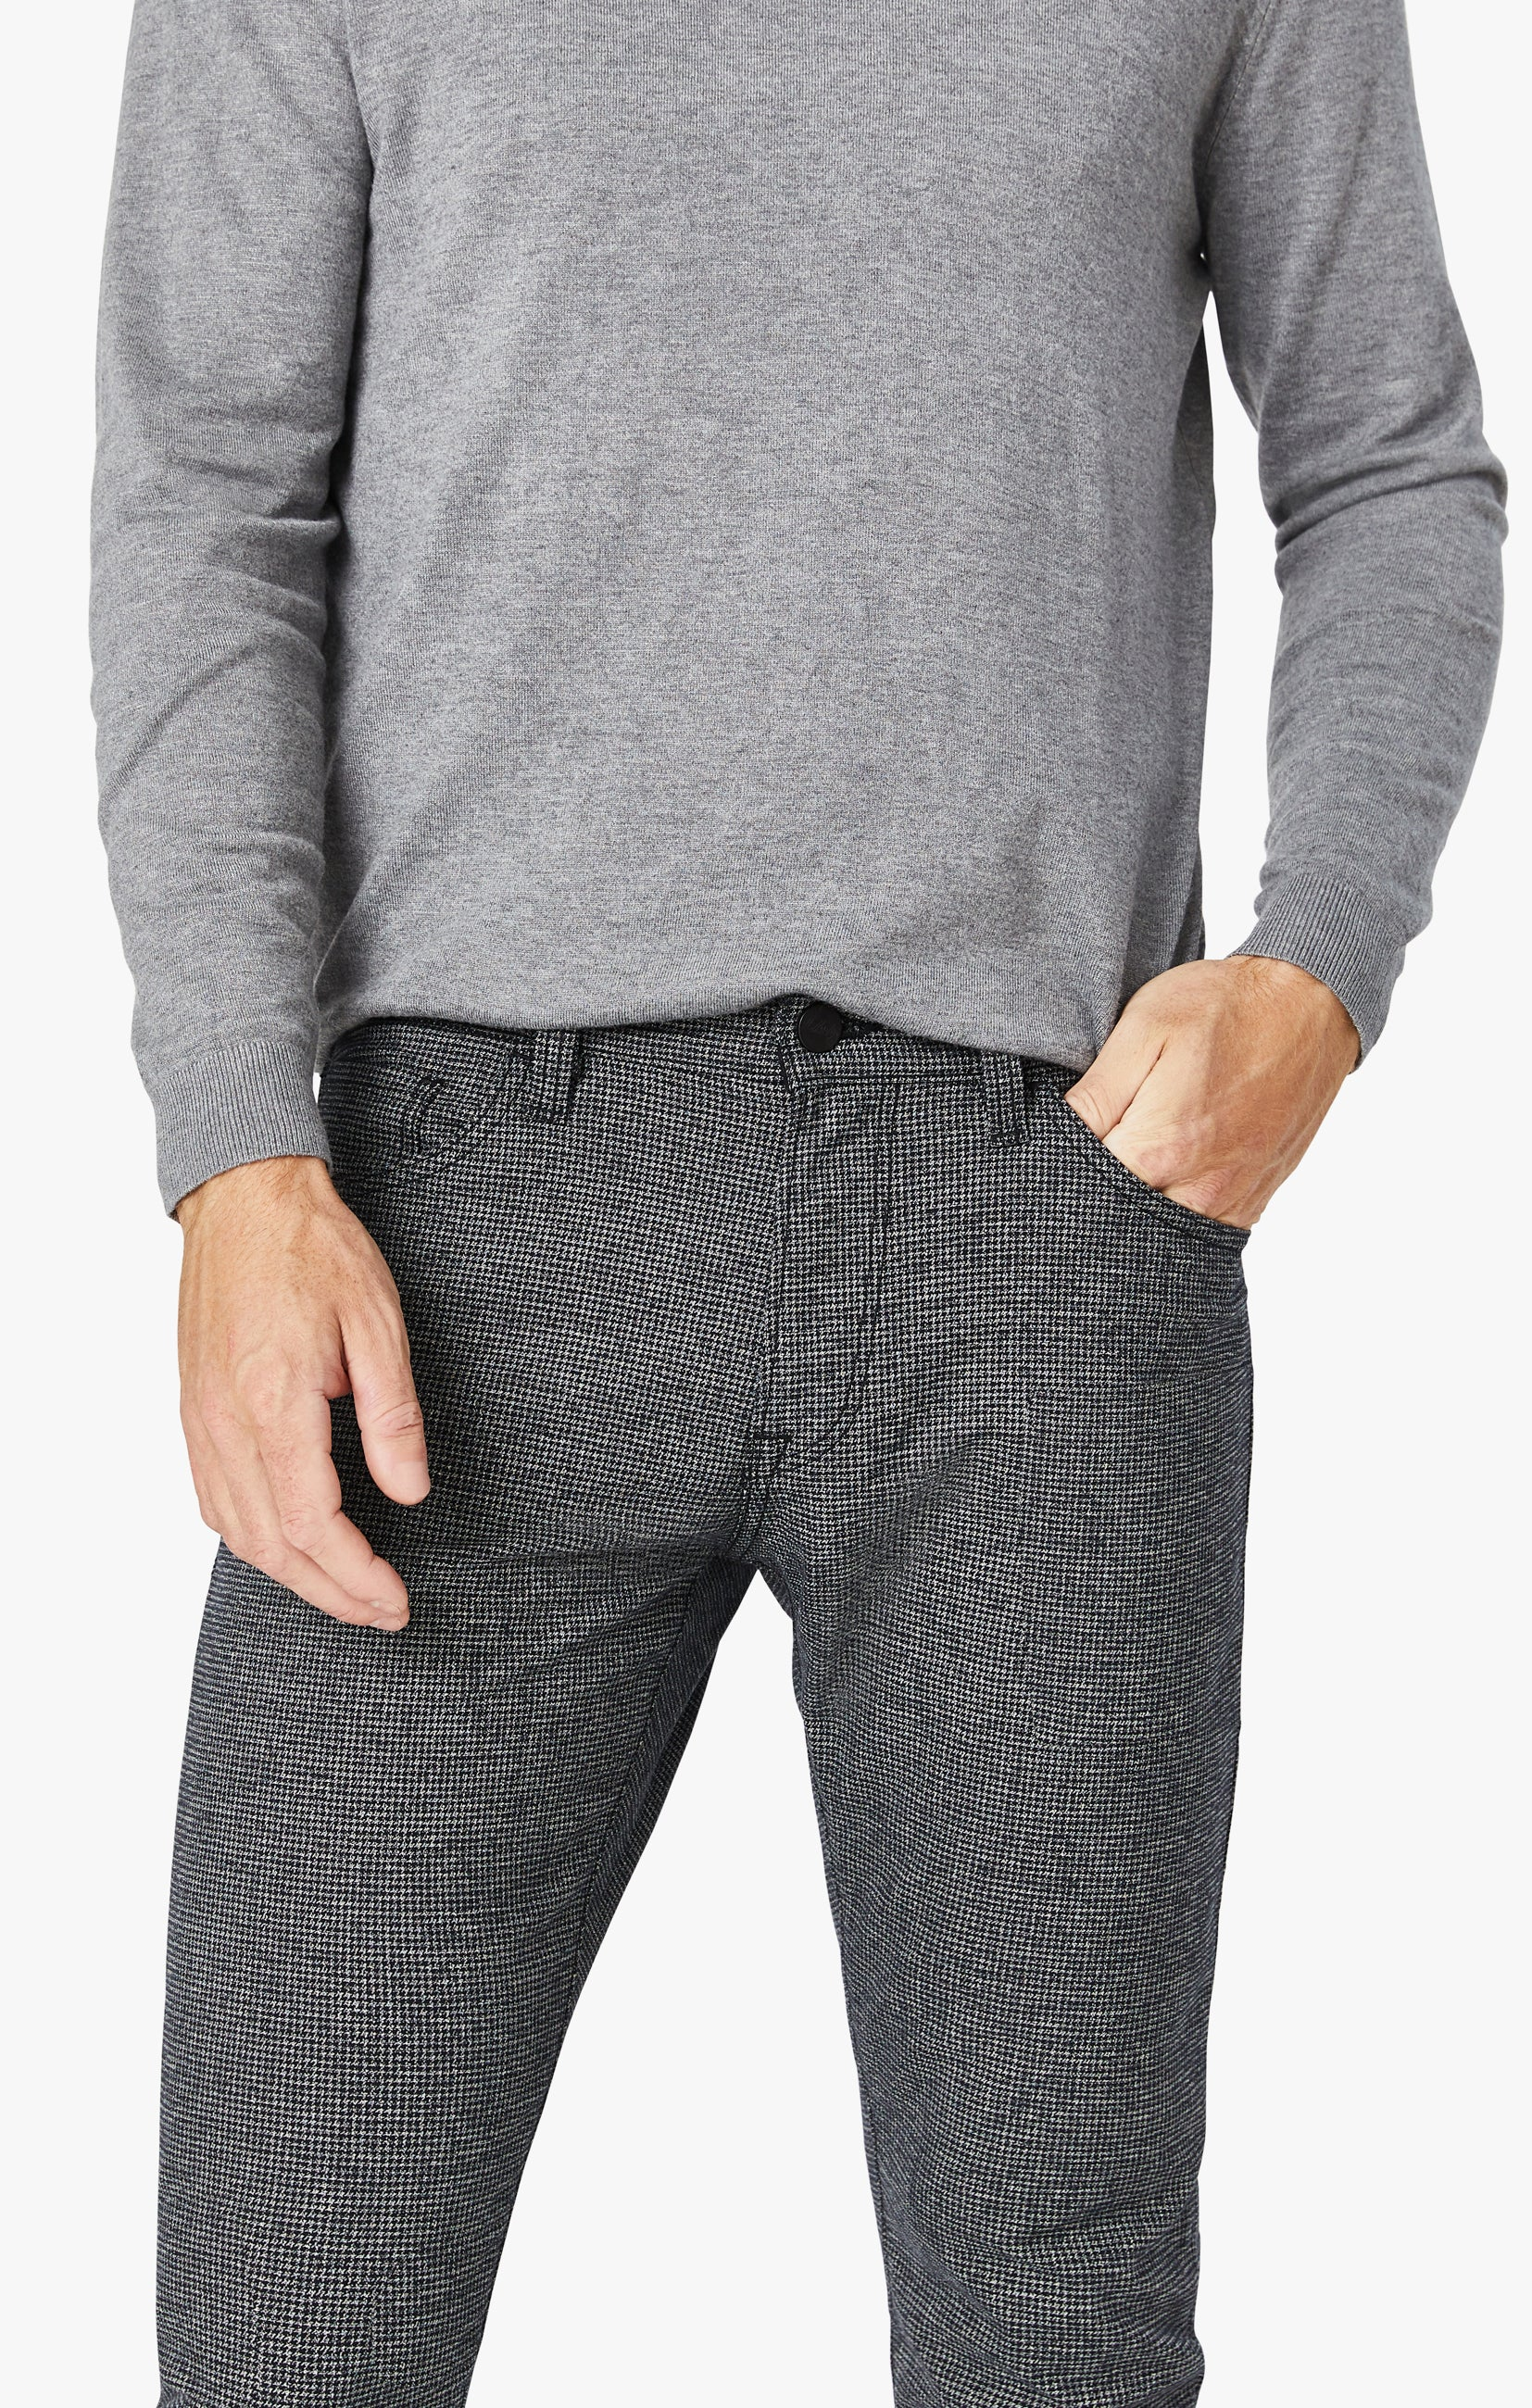 Courage Straight Leg Pants In Grey Houndstooth Image 2